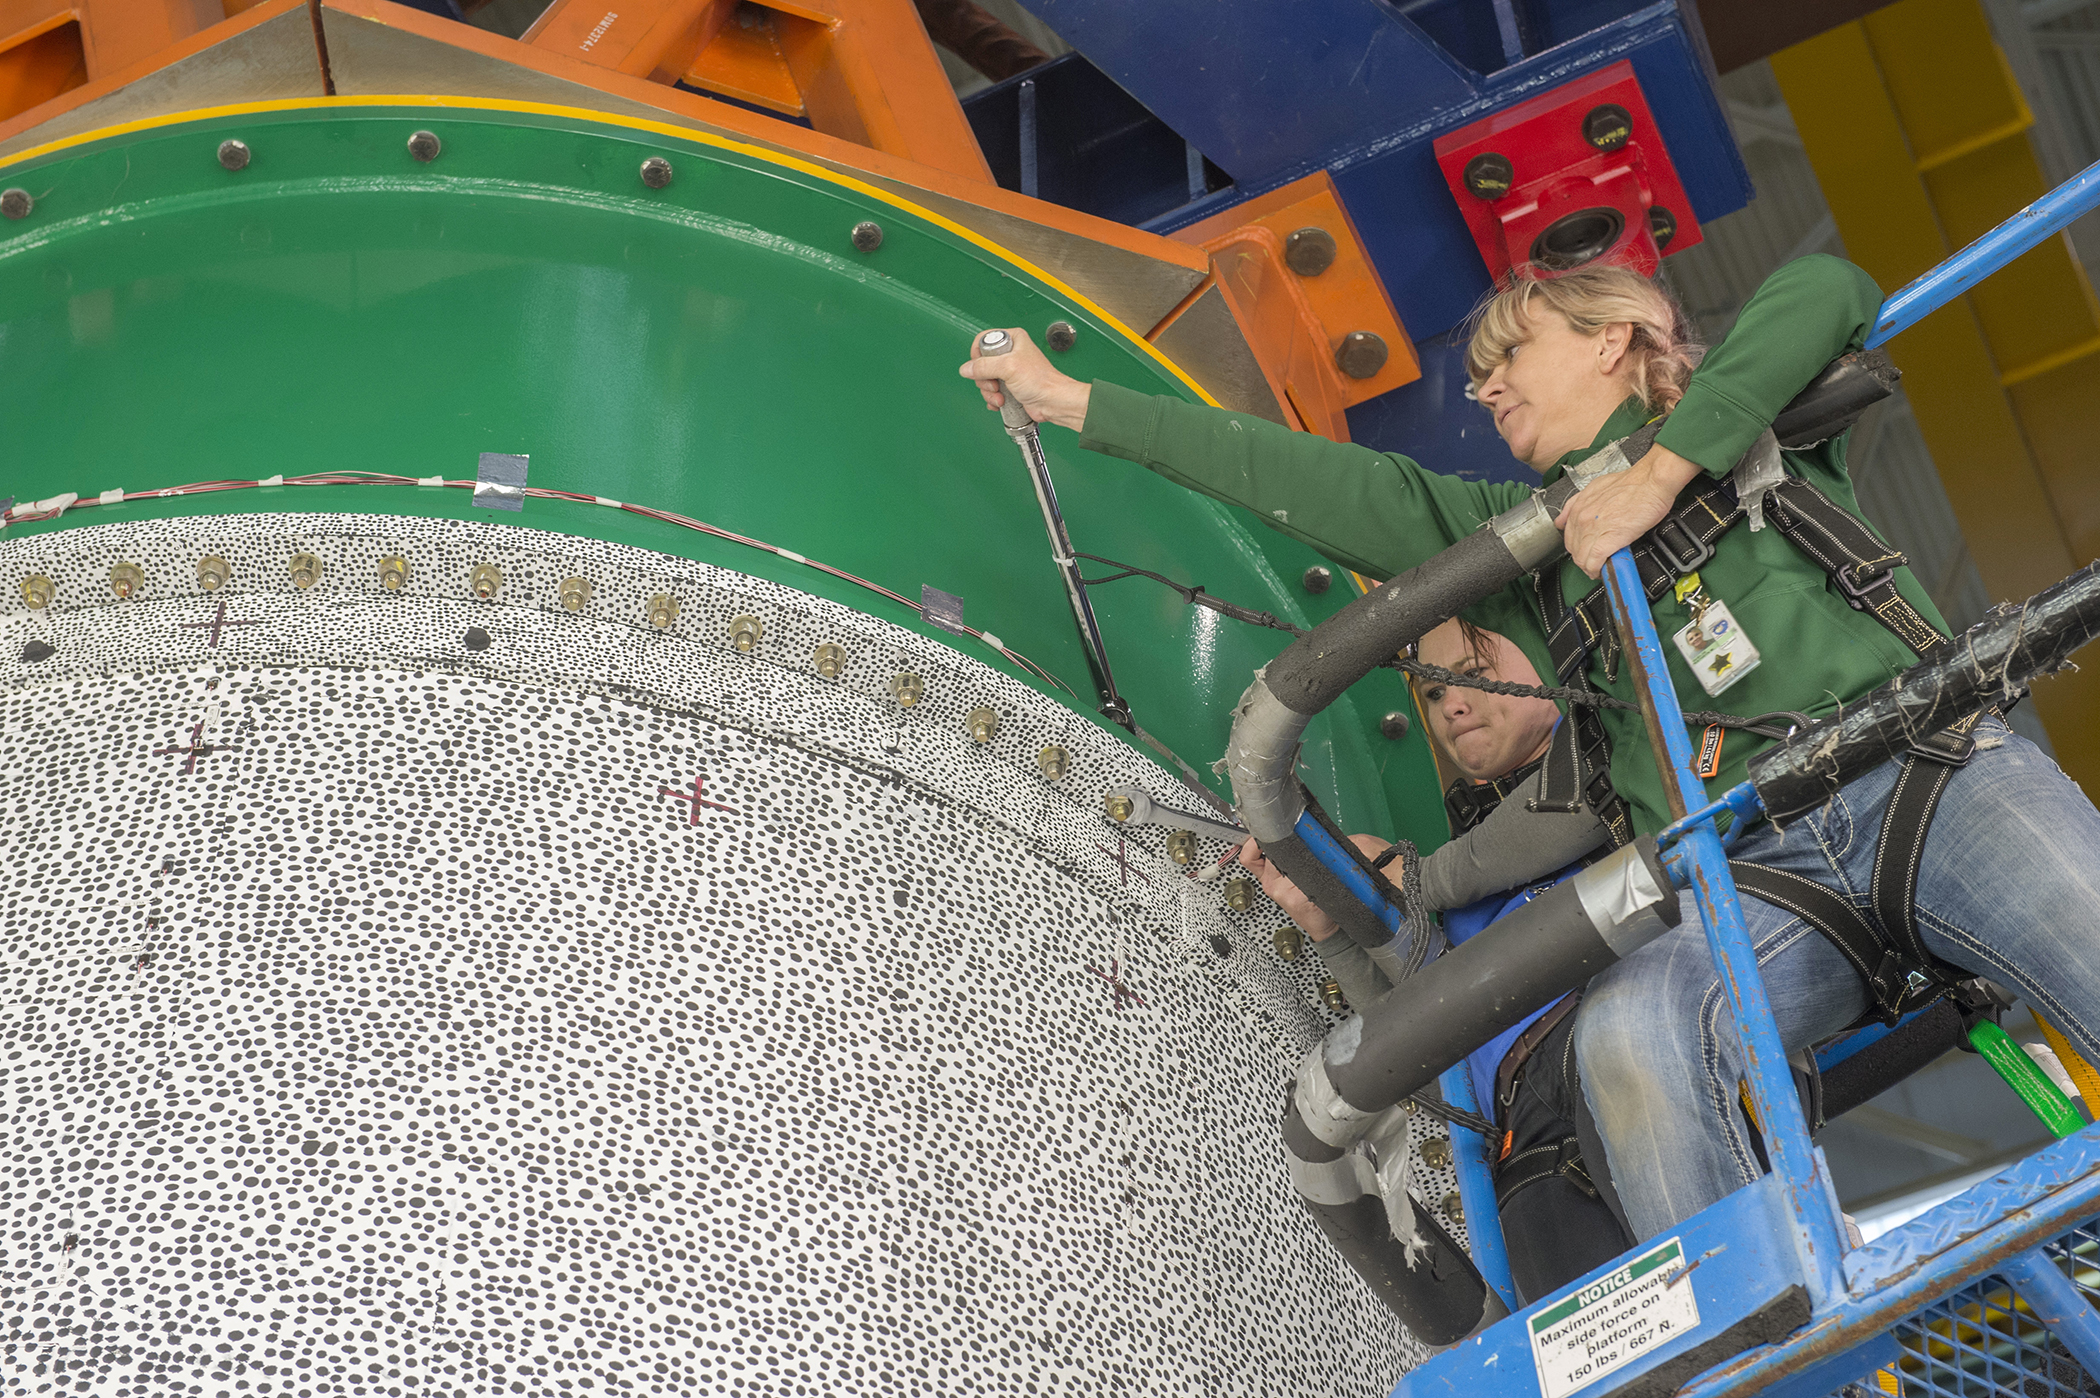 NASA Ends First Round of Composite Shell Buckling Tests with a Bang